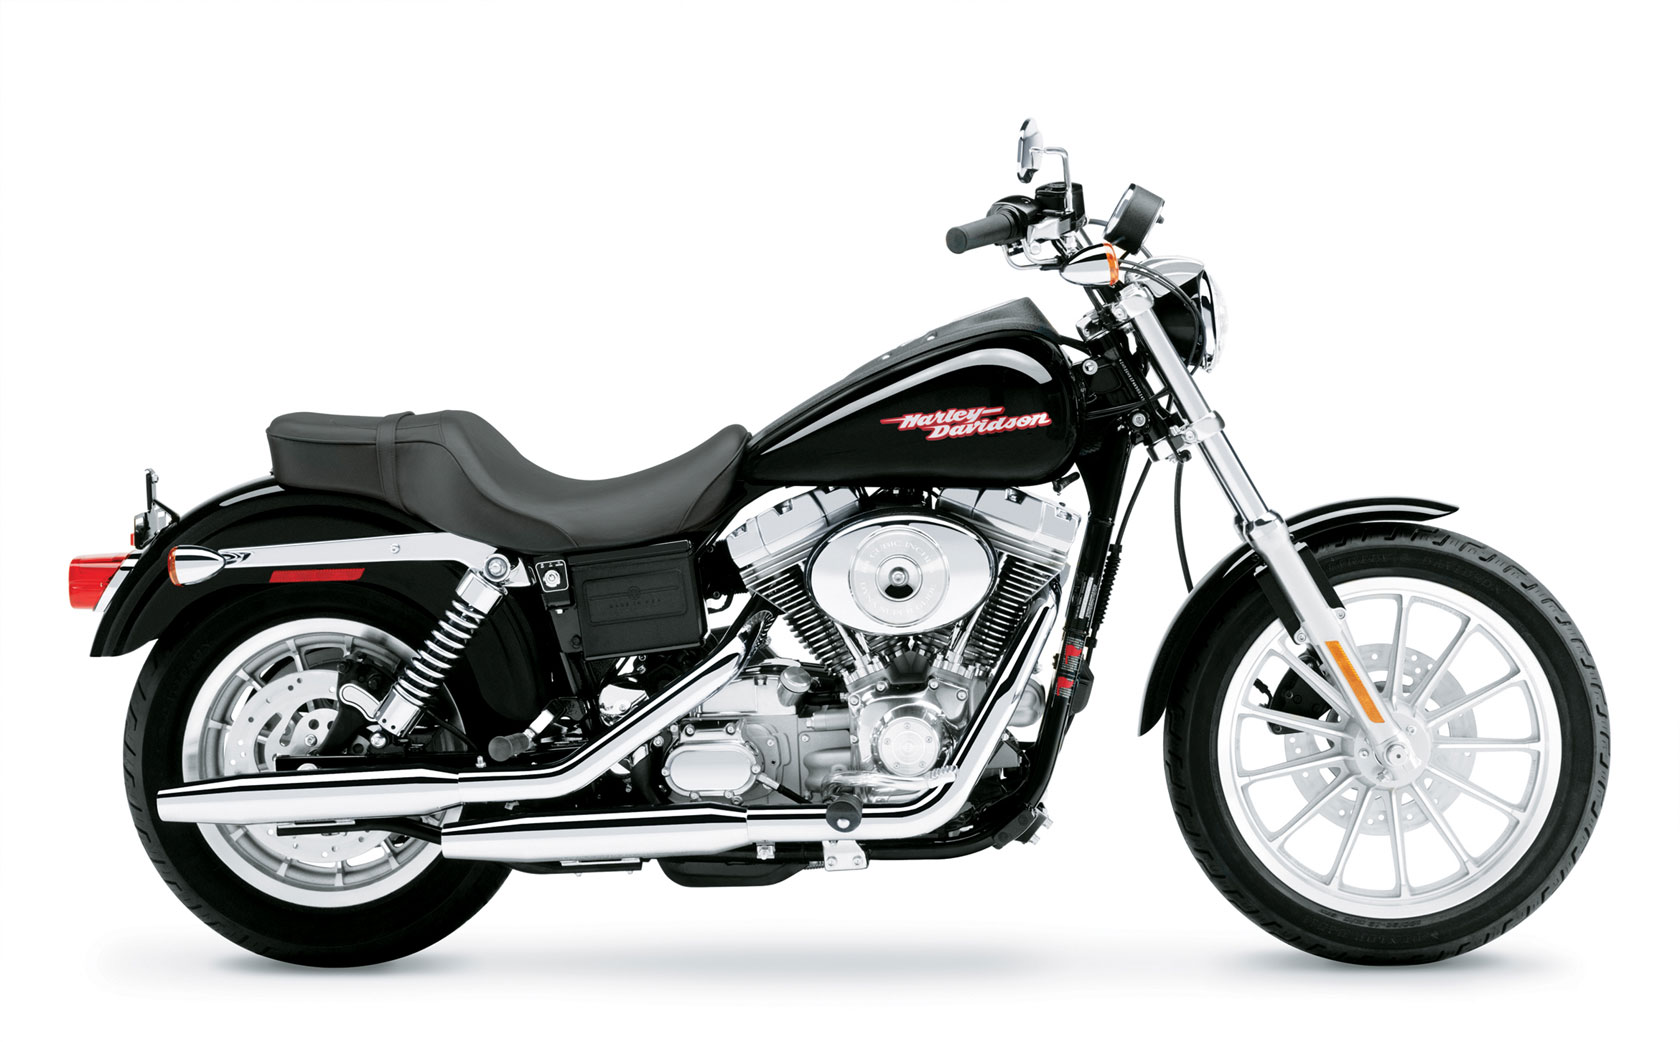 2004 harley davidson fxd dyna super glide pics specs and information. Black Bedroom Furniture Sets. Home Design Ideas